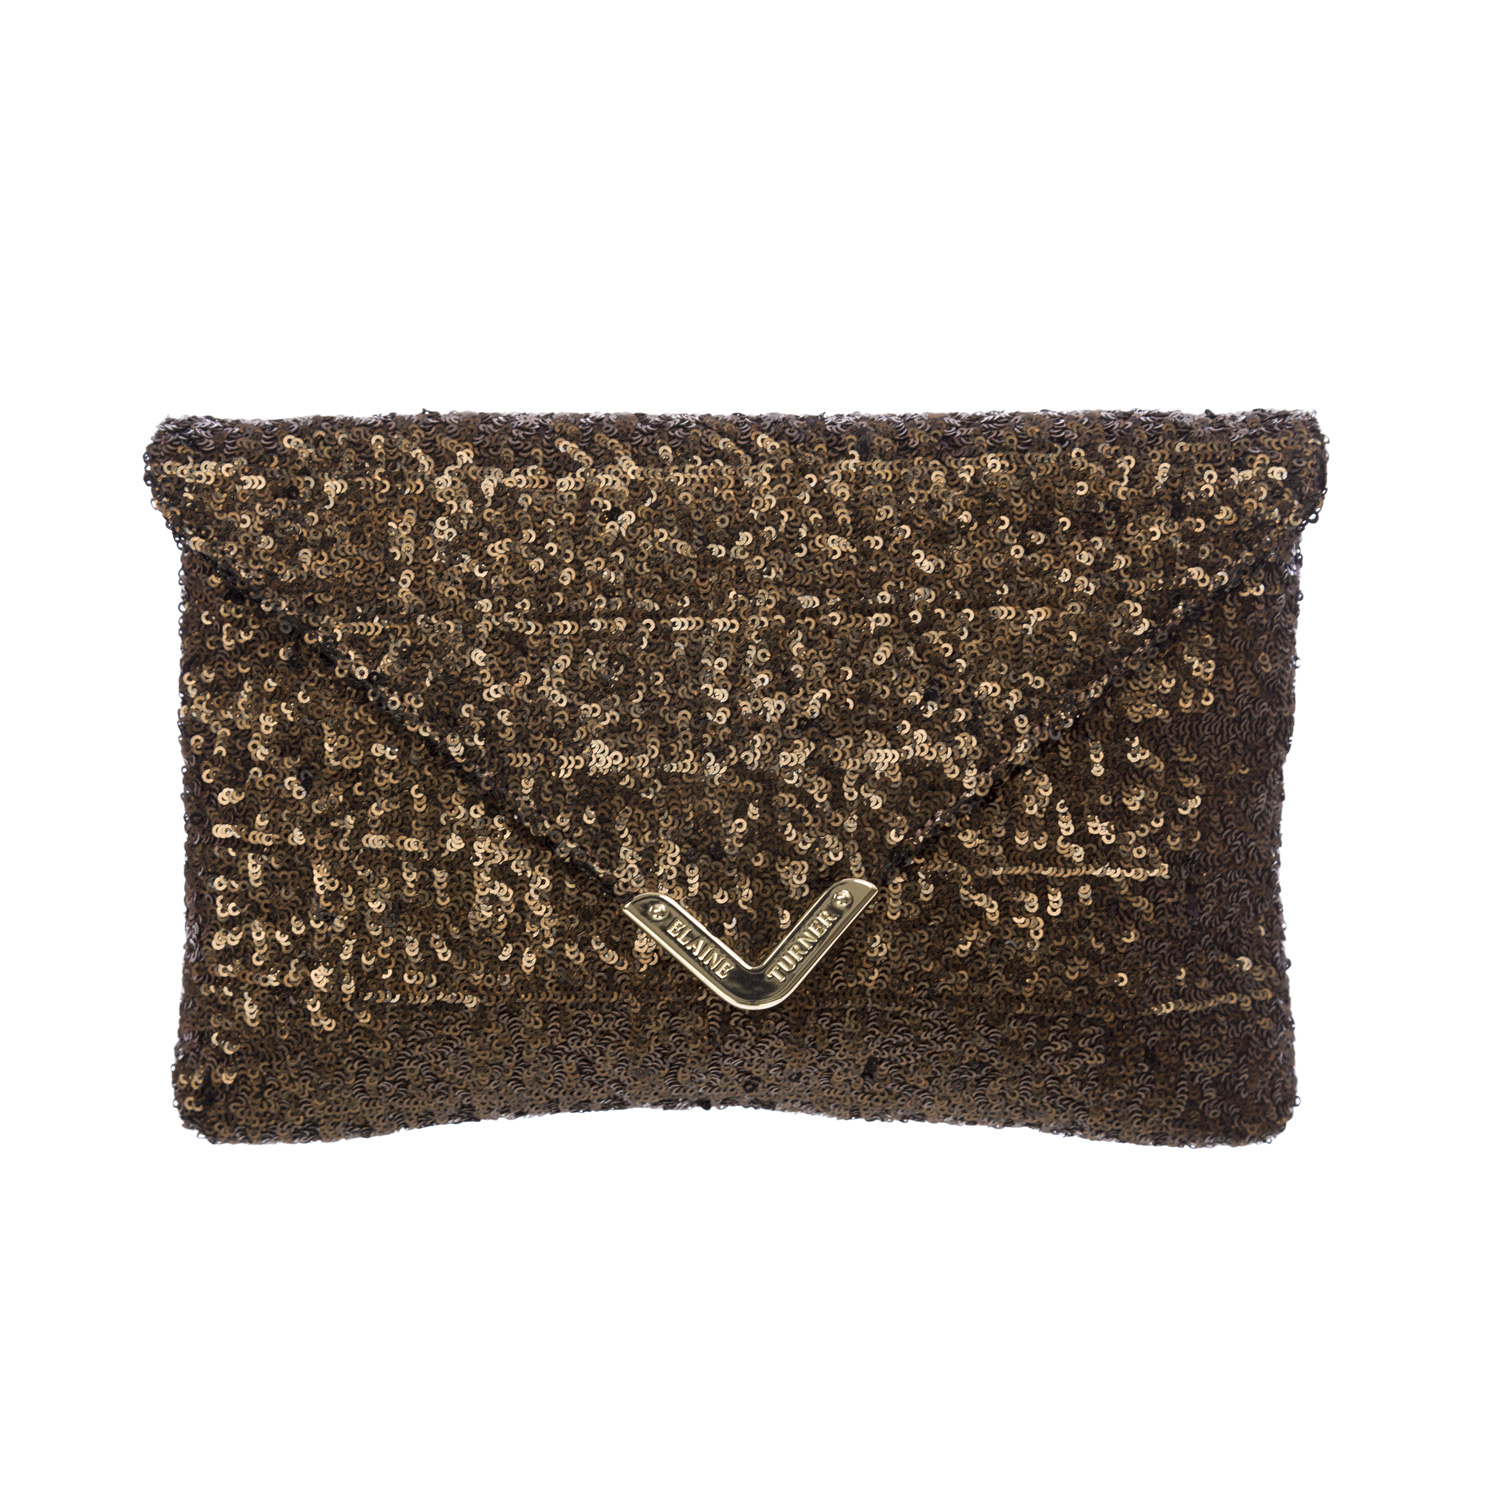 Elaine Turner Women's Sequined Bella Envelope Clutch Bag One Size Bronze